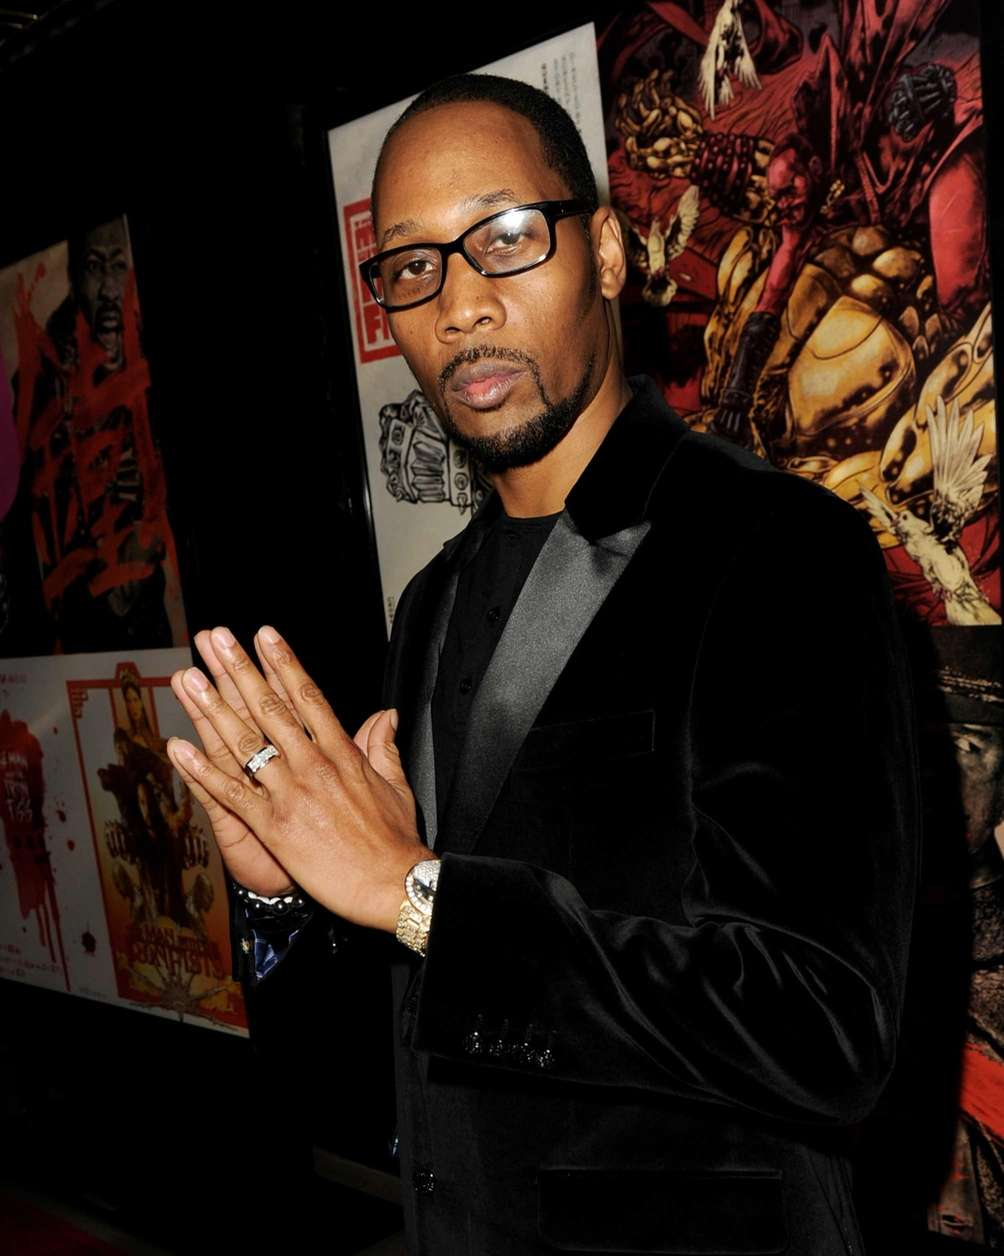 Actor-director and Wu-Tang Clan rapper RZA, who says